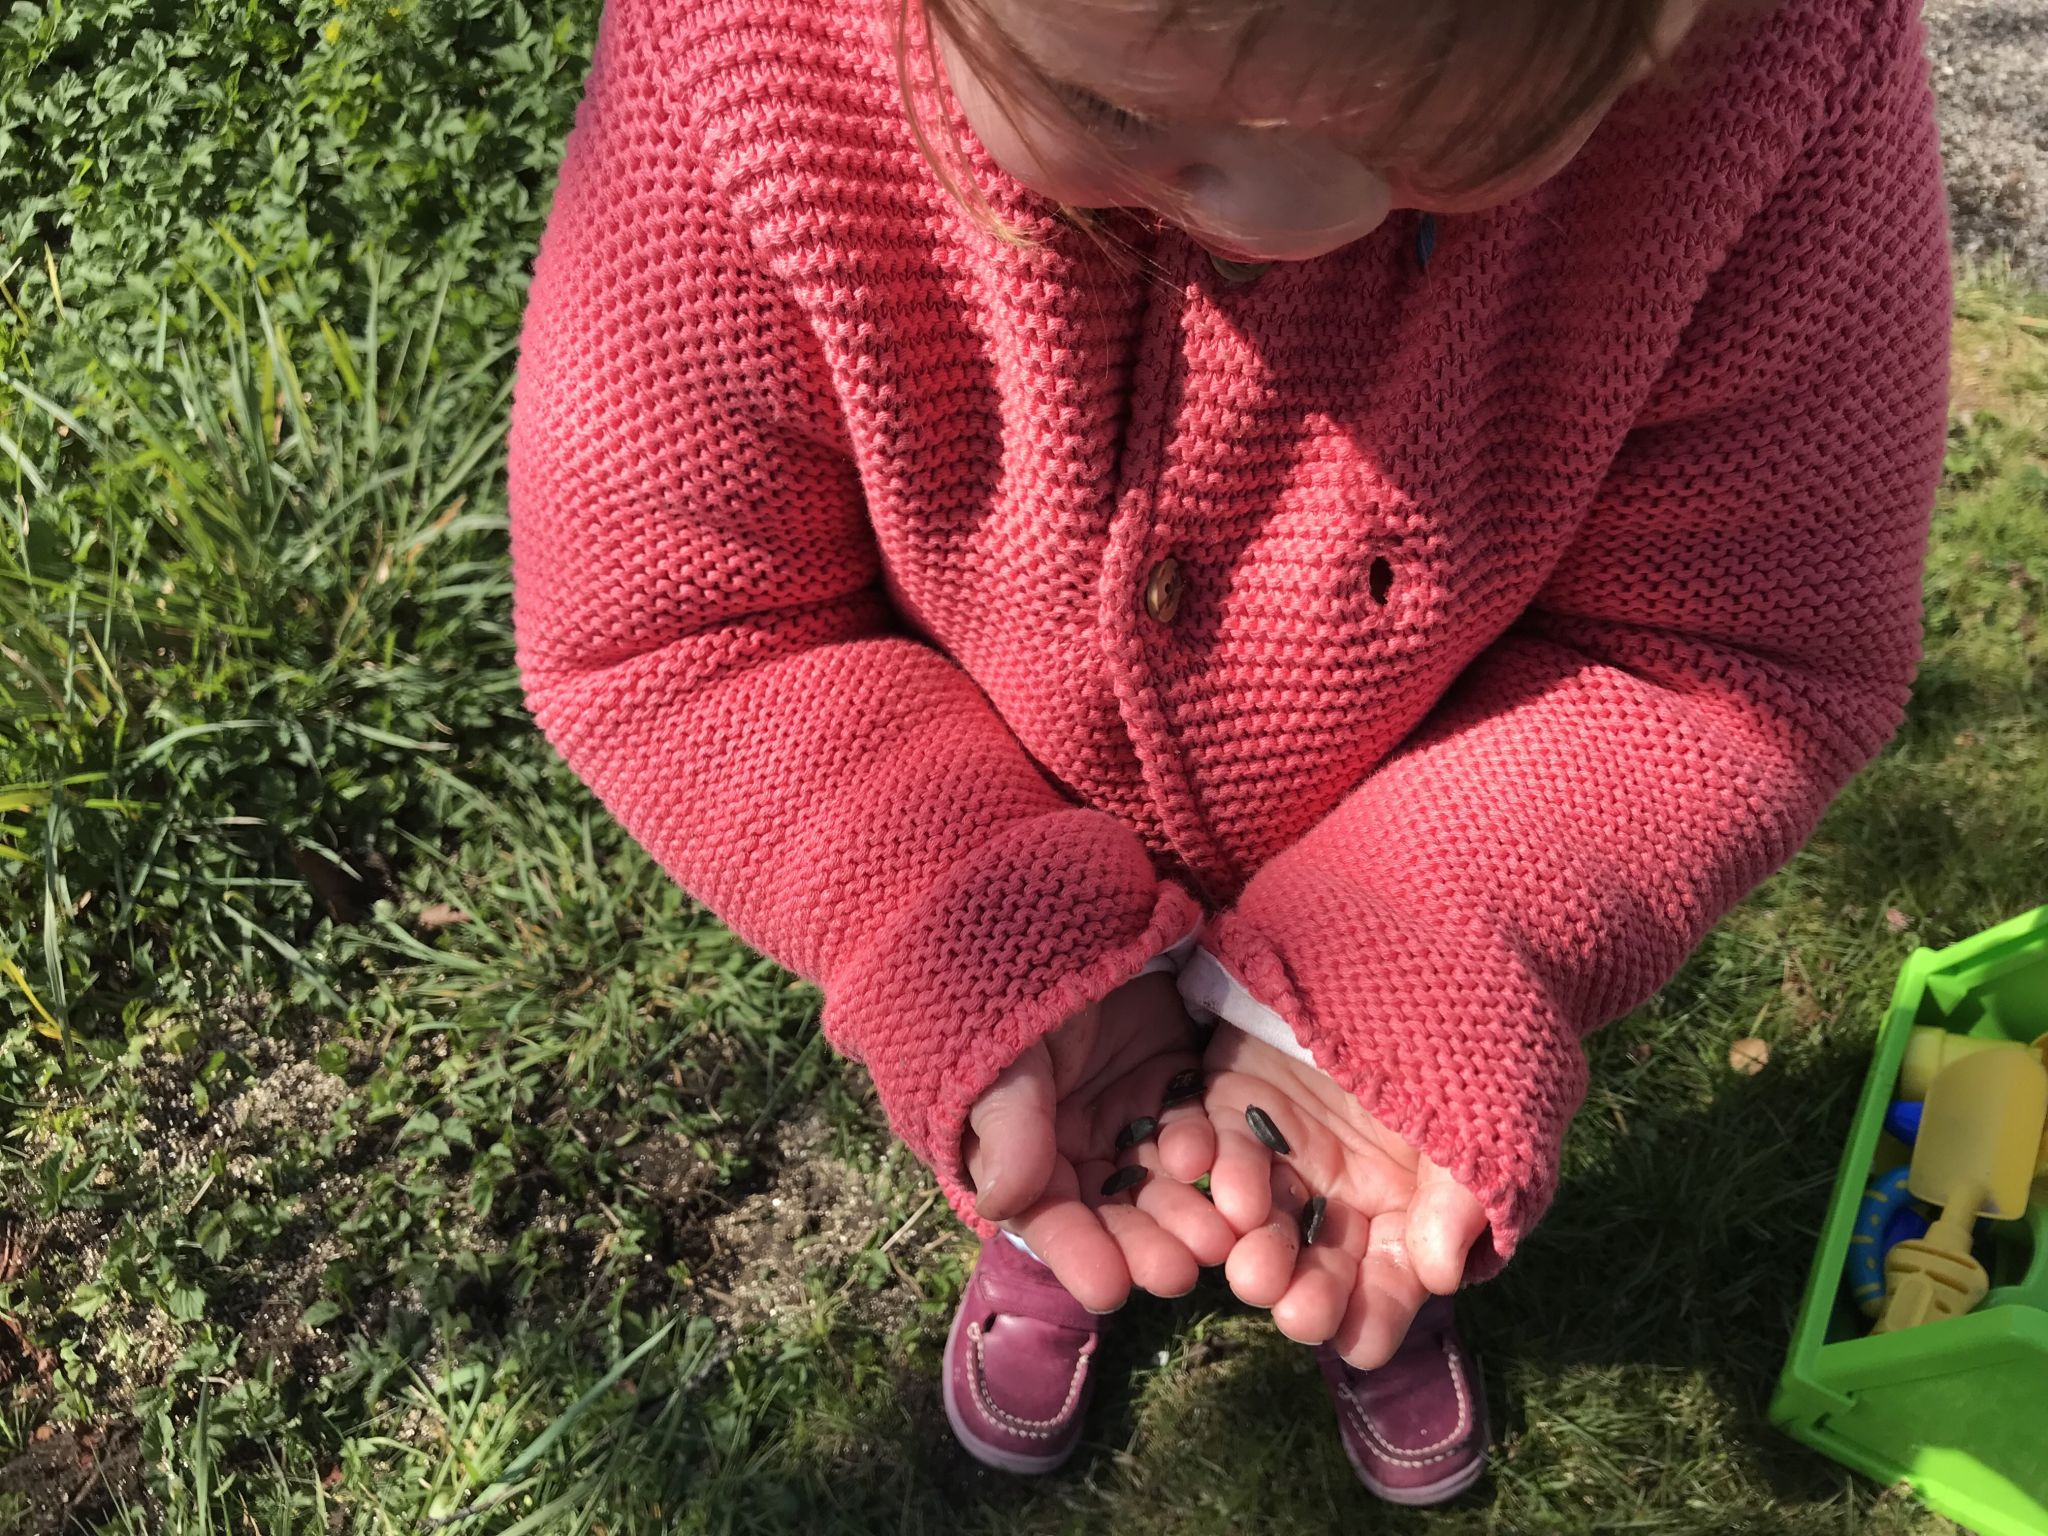 a toddler holding sunflower seeds in her hands